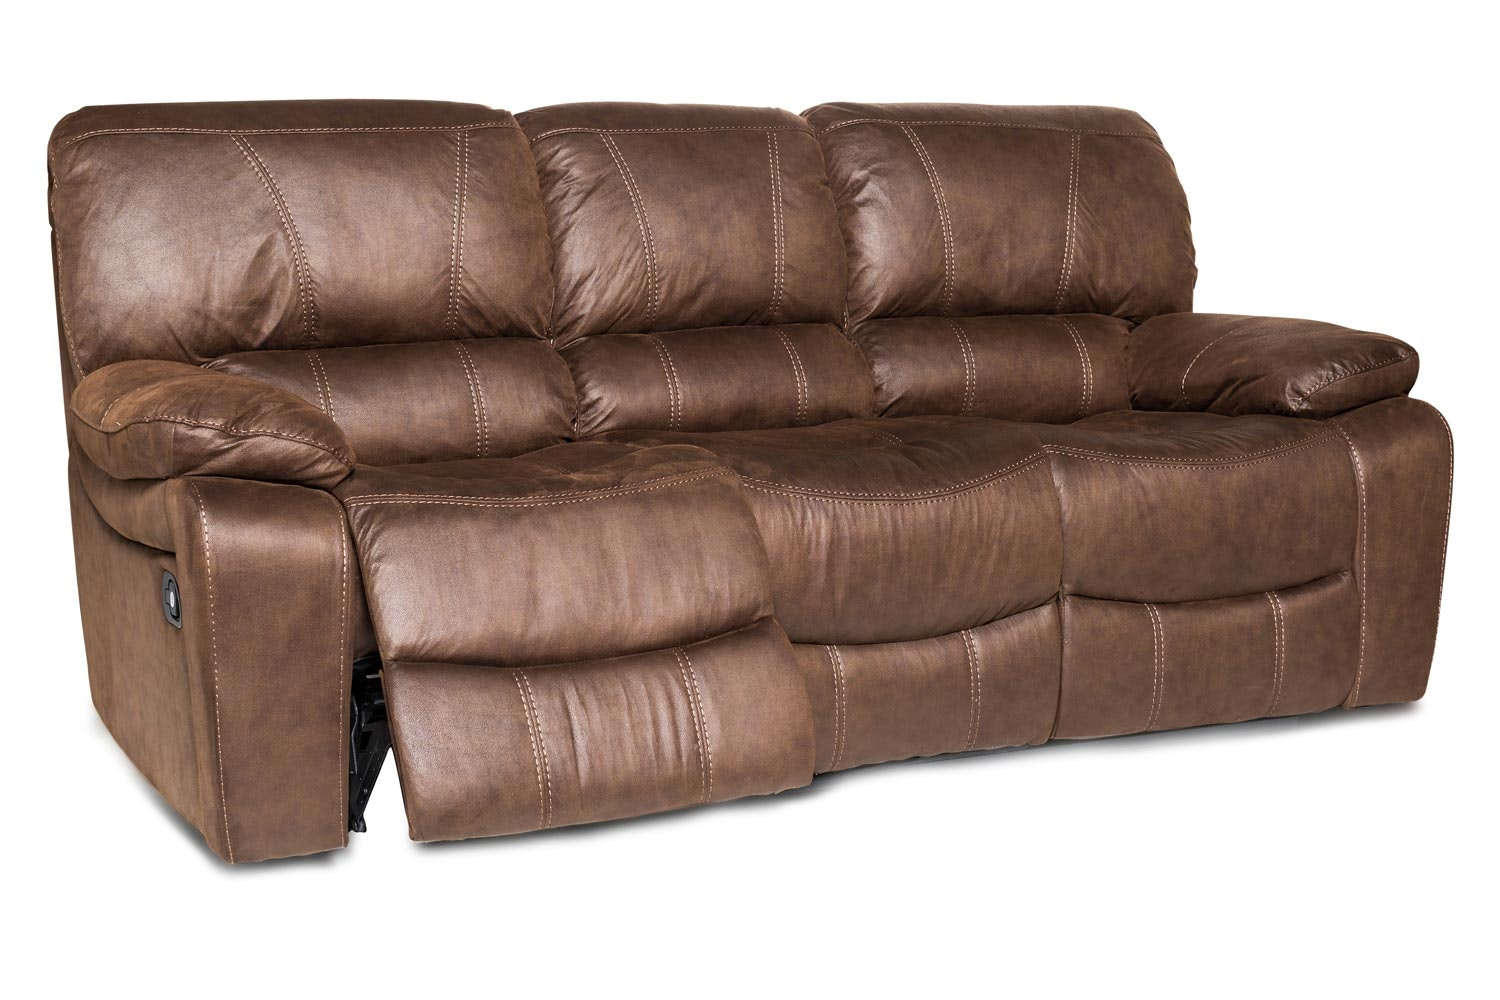 Cooper 3 Seater Recliner Sofa